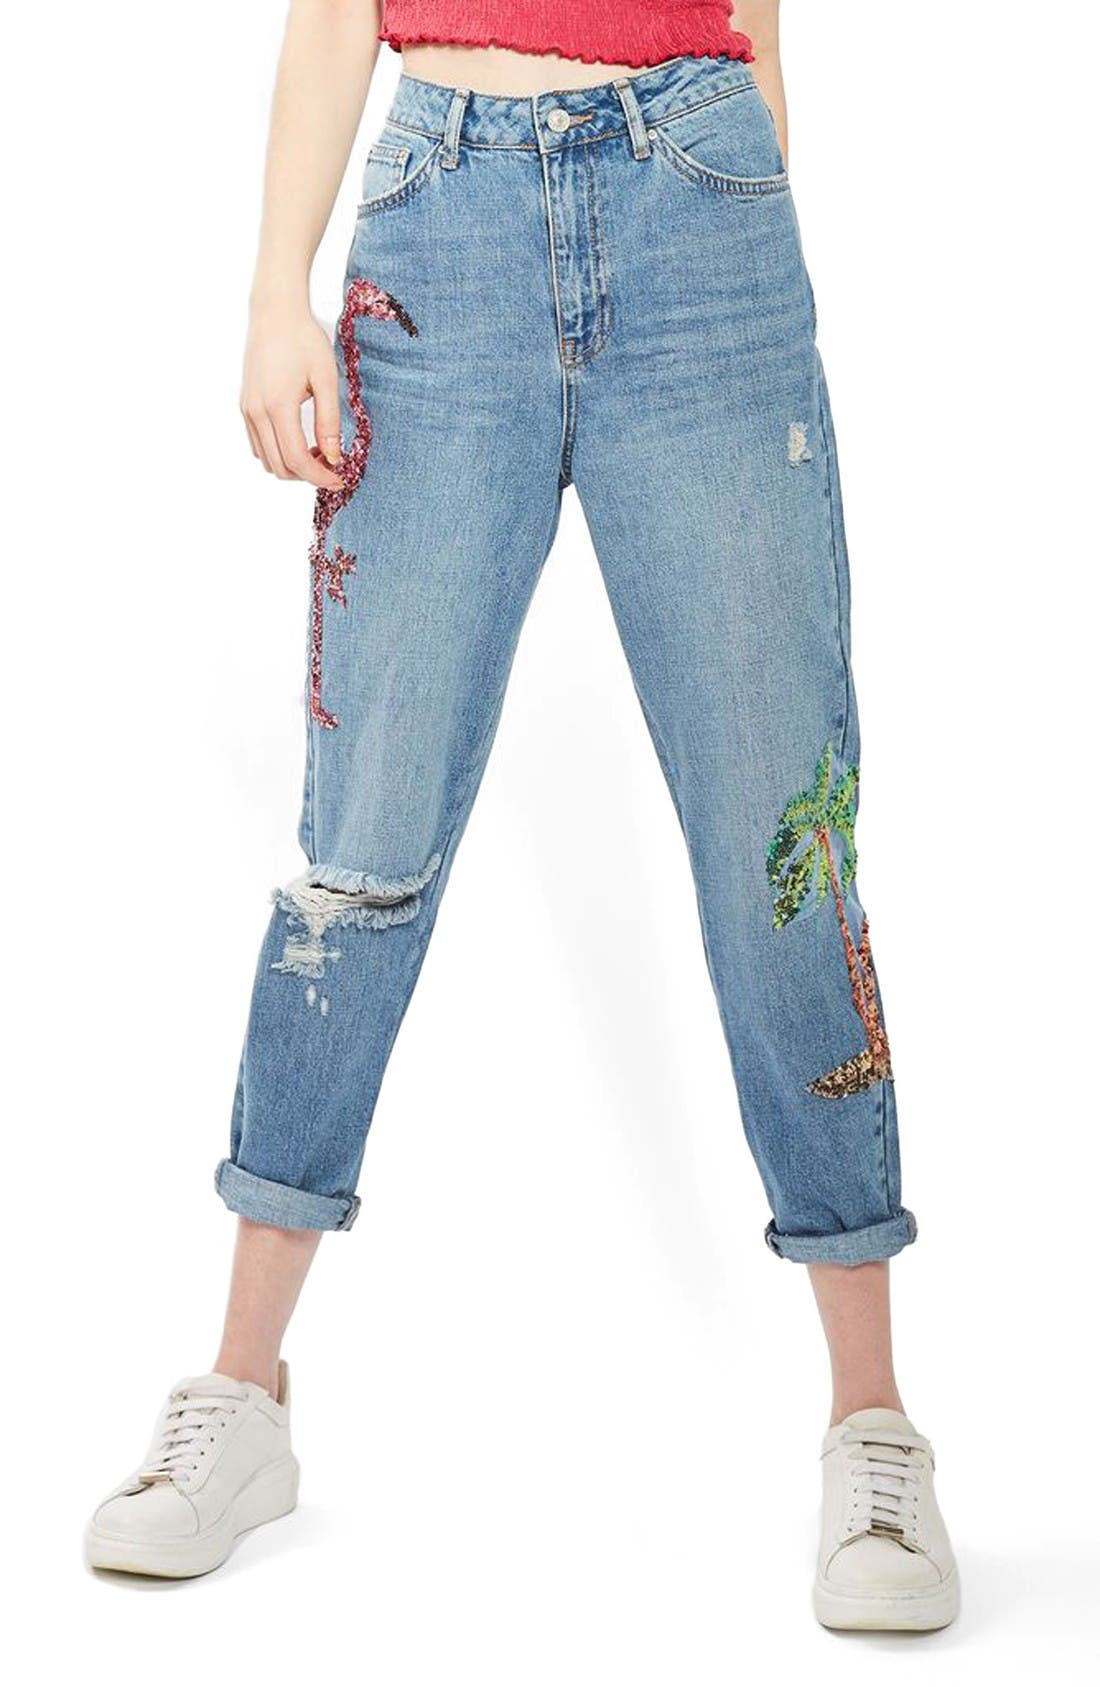 Alternate Image 1 Selected - Topshop Distressed Sequin Mom Jeans